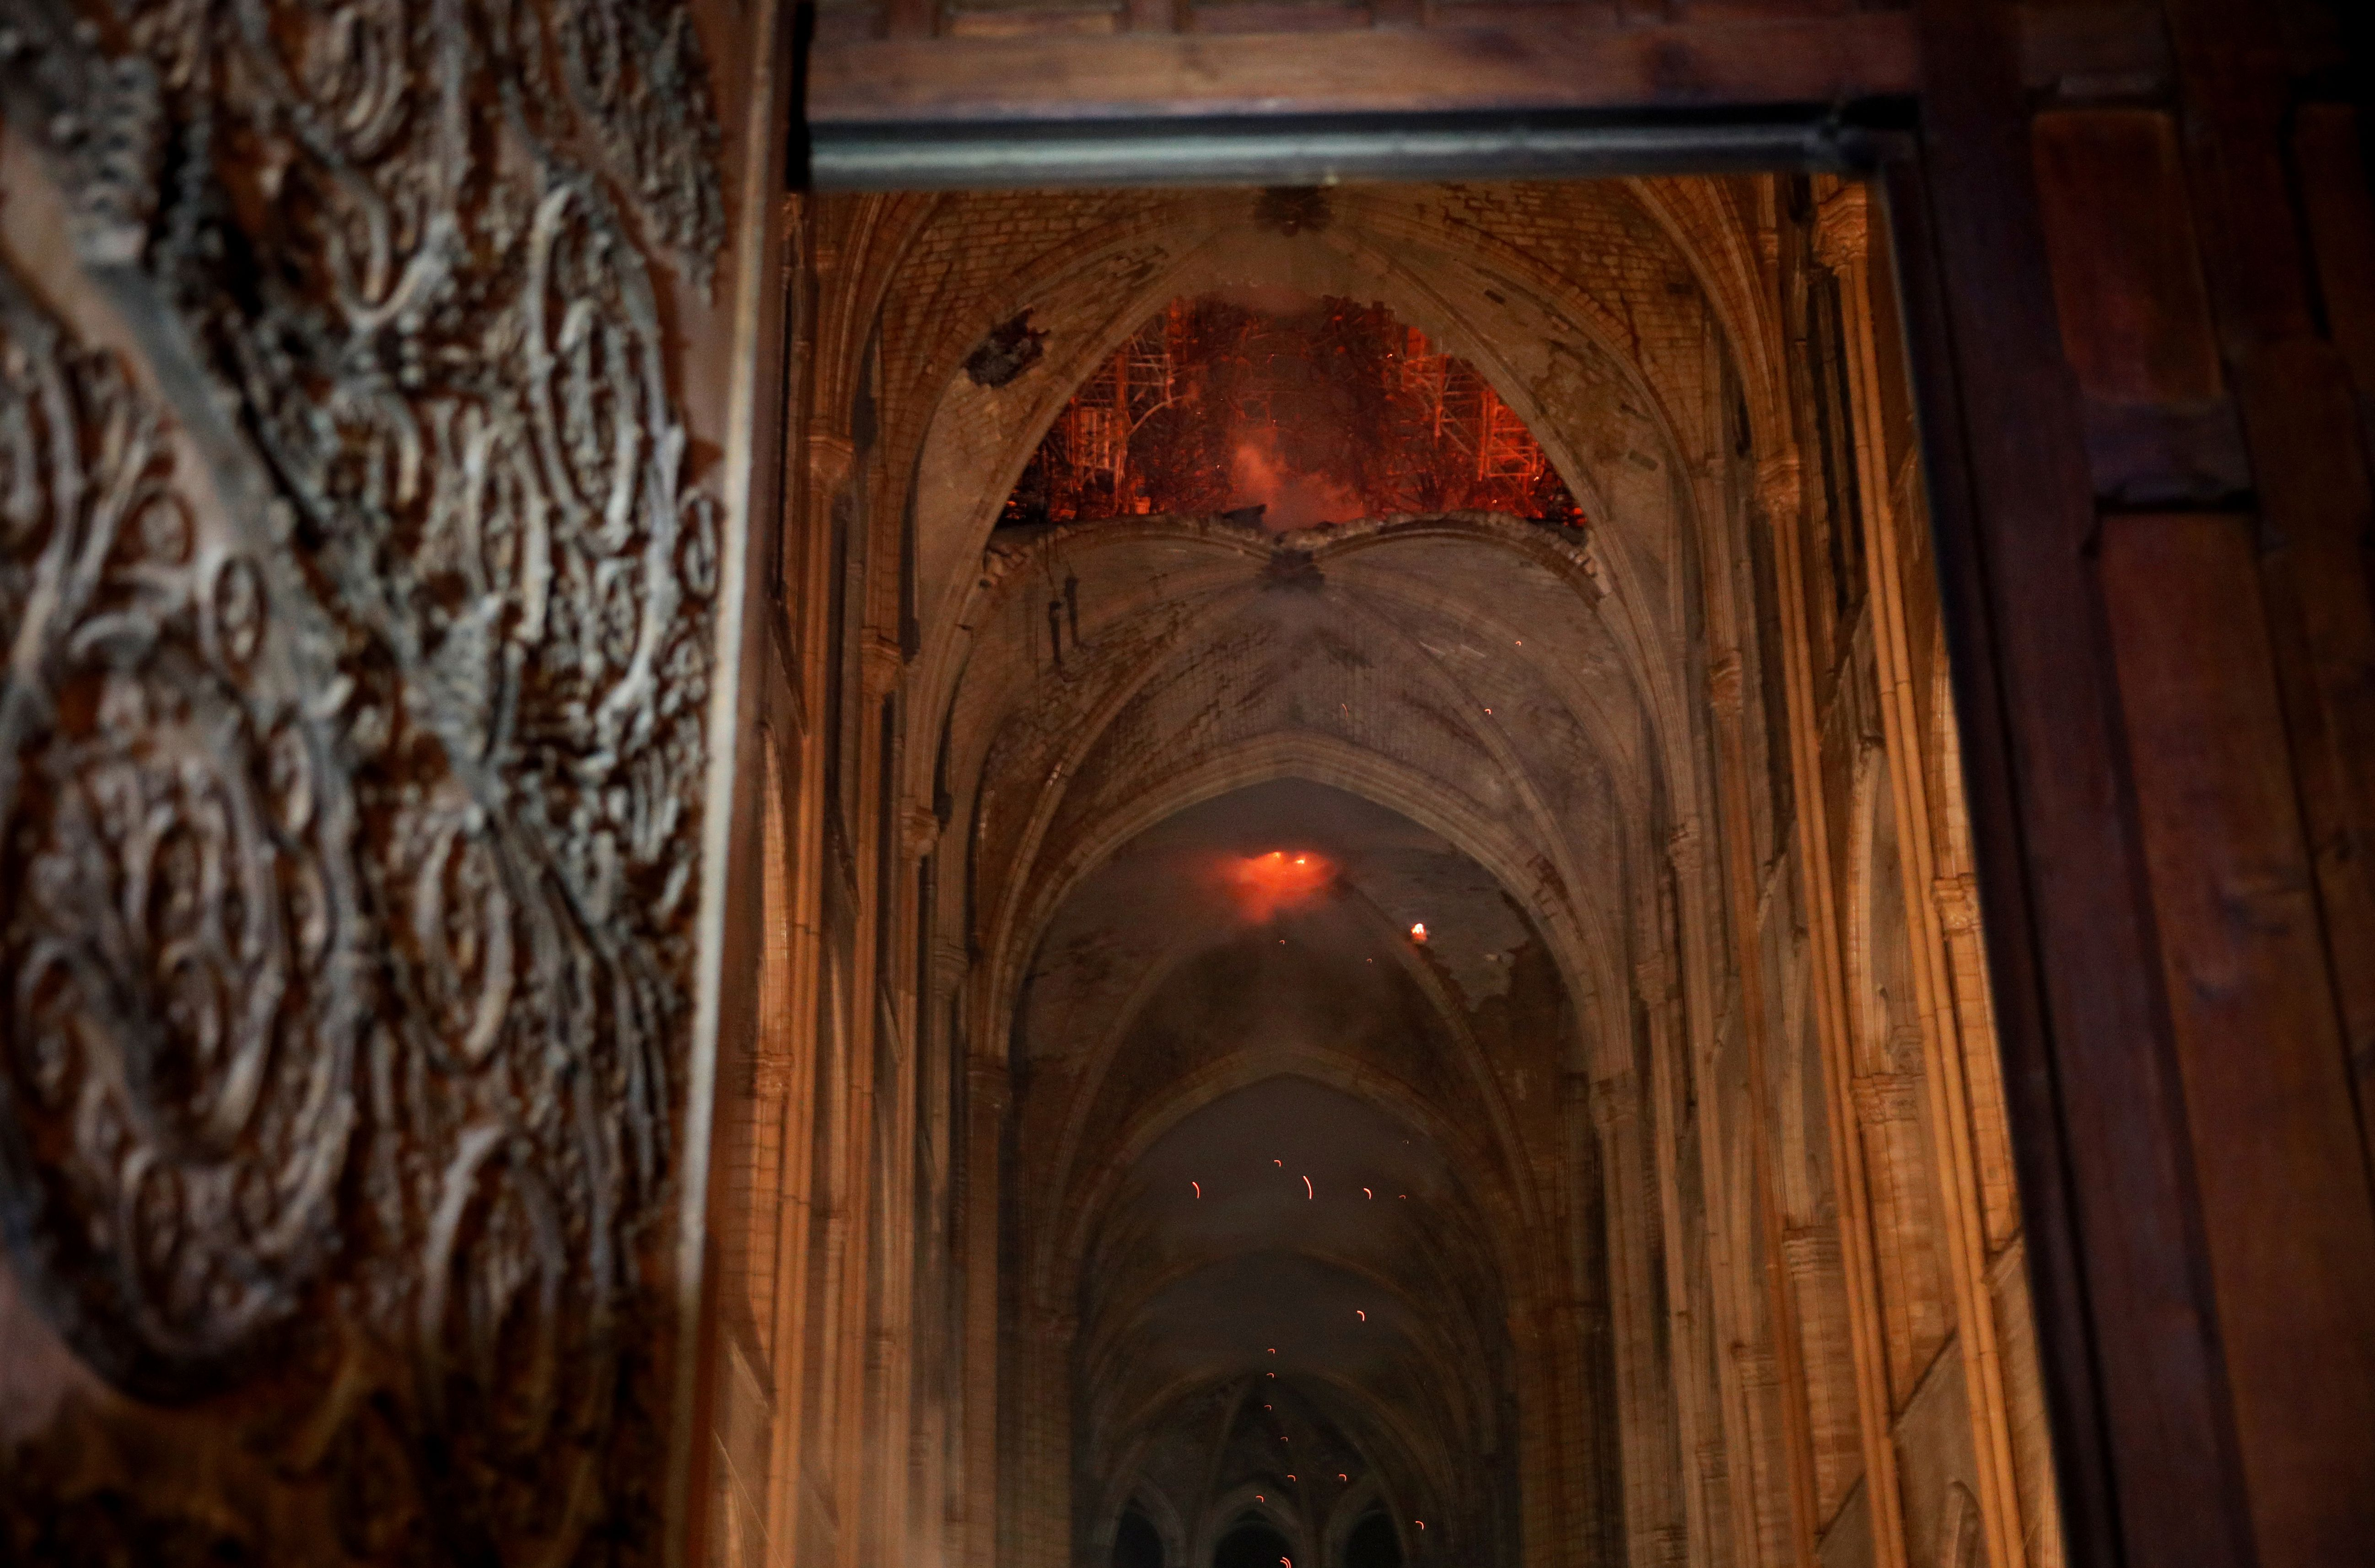 Flames and smoke rise from the interior of Notre-Dame Cathedral in Paris on April 15, 2019, after a fire engulfed the building. - A huge fire swept through the roof of the famed Notre-Dame Cathedral in central Paris on April 15, 2019, sending flames and huge clouds of grey smoke billowing into the sky. The flames and smoke plumed from the spire and roof of the gothic cathedral, visited by millions of people a year. A spokesman for the cathedral told AFP that the wooden structure supporting the roof was being gutted by the blaze. (Photo by PHILIPPE WOJAZER / POOL / AFP)        (Photo credit should read PHILIPPE WOJAZER/AFP/Getty Images)